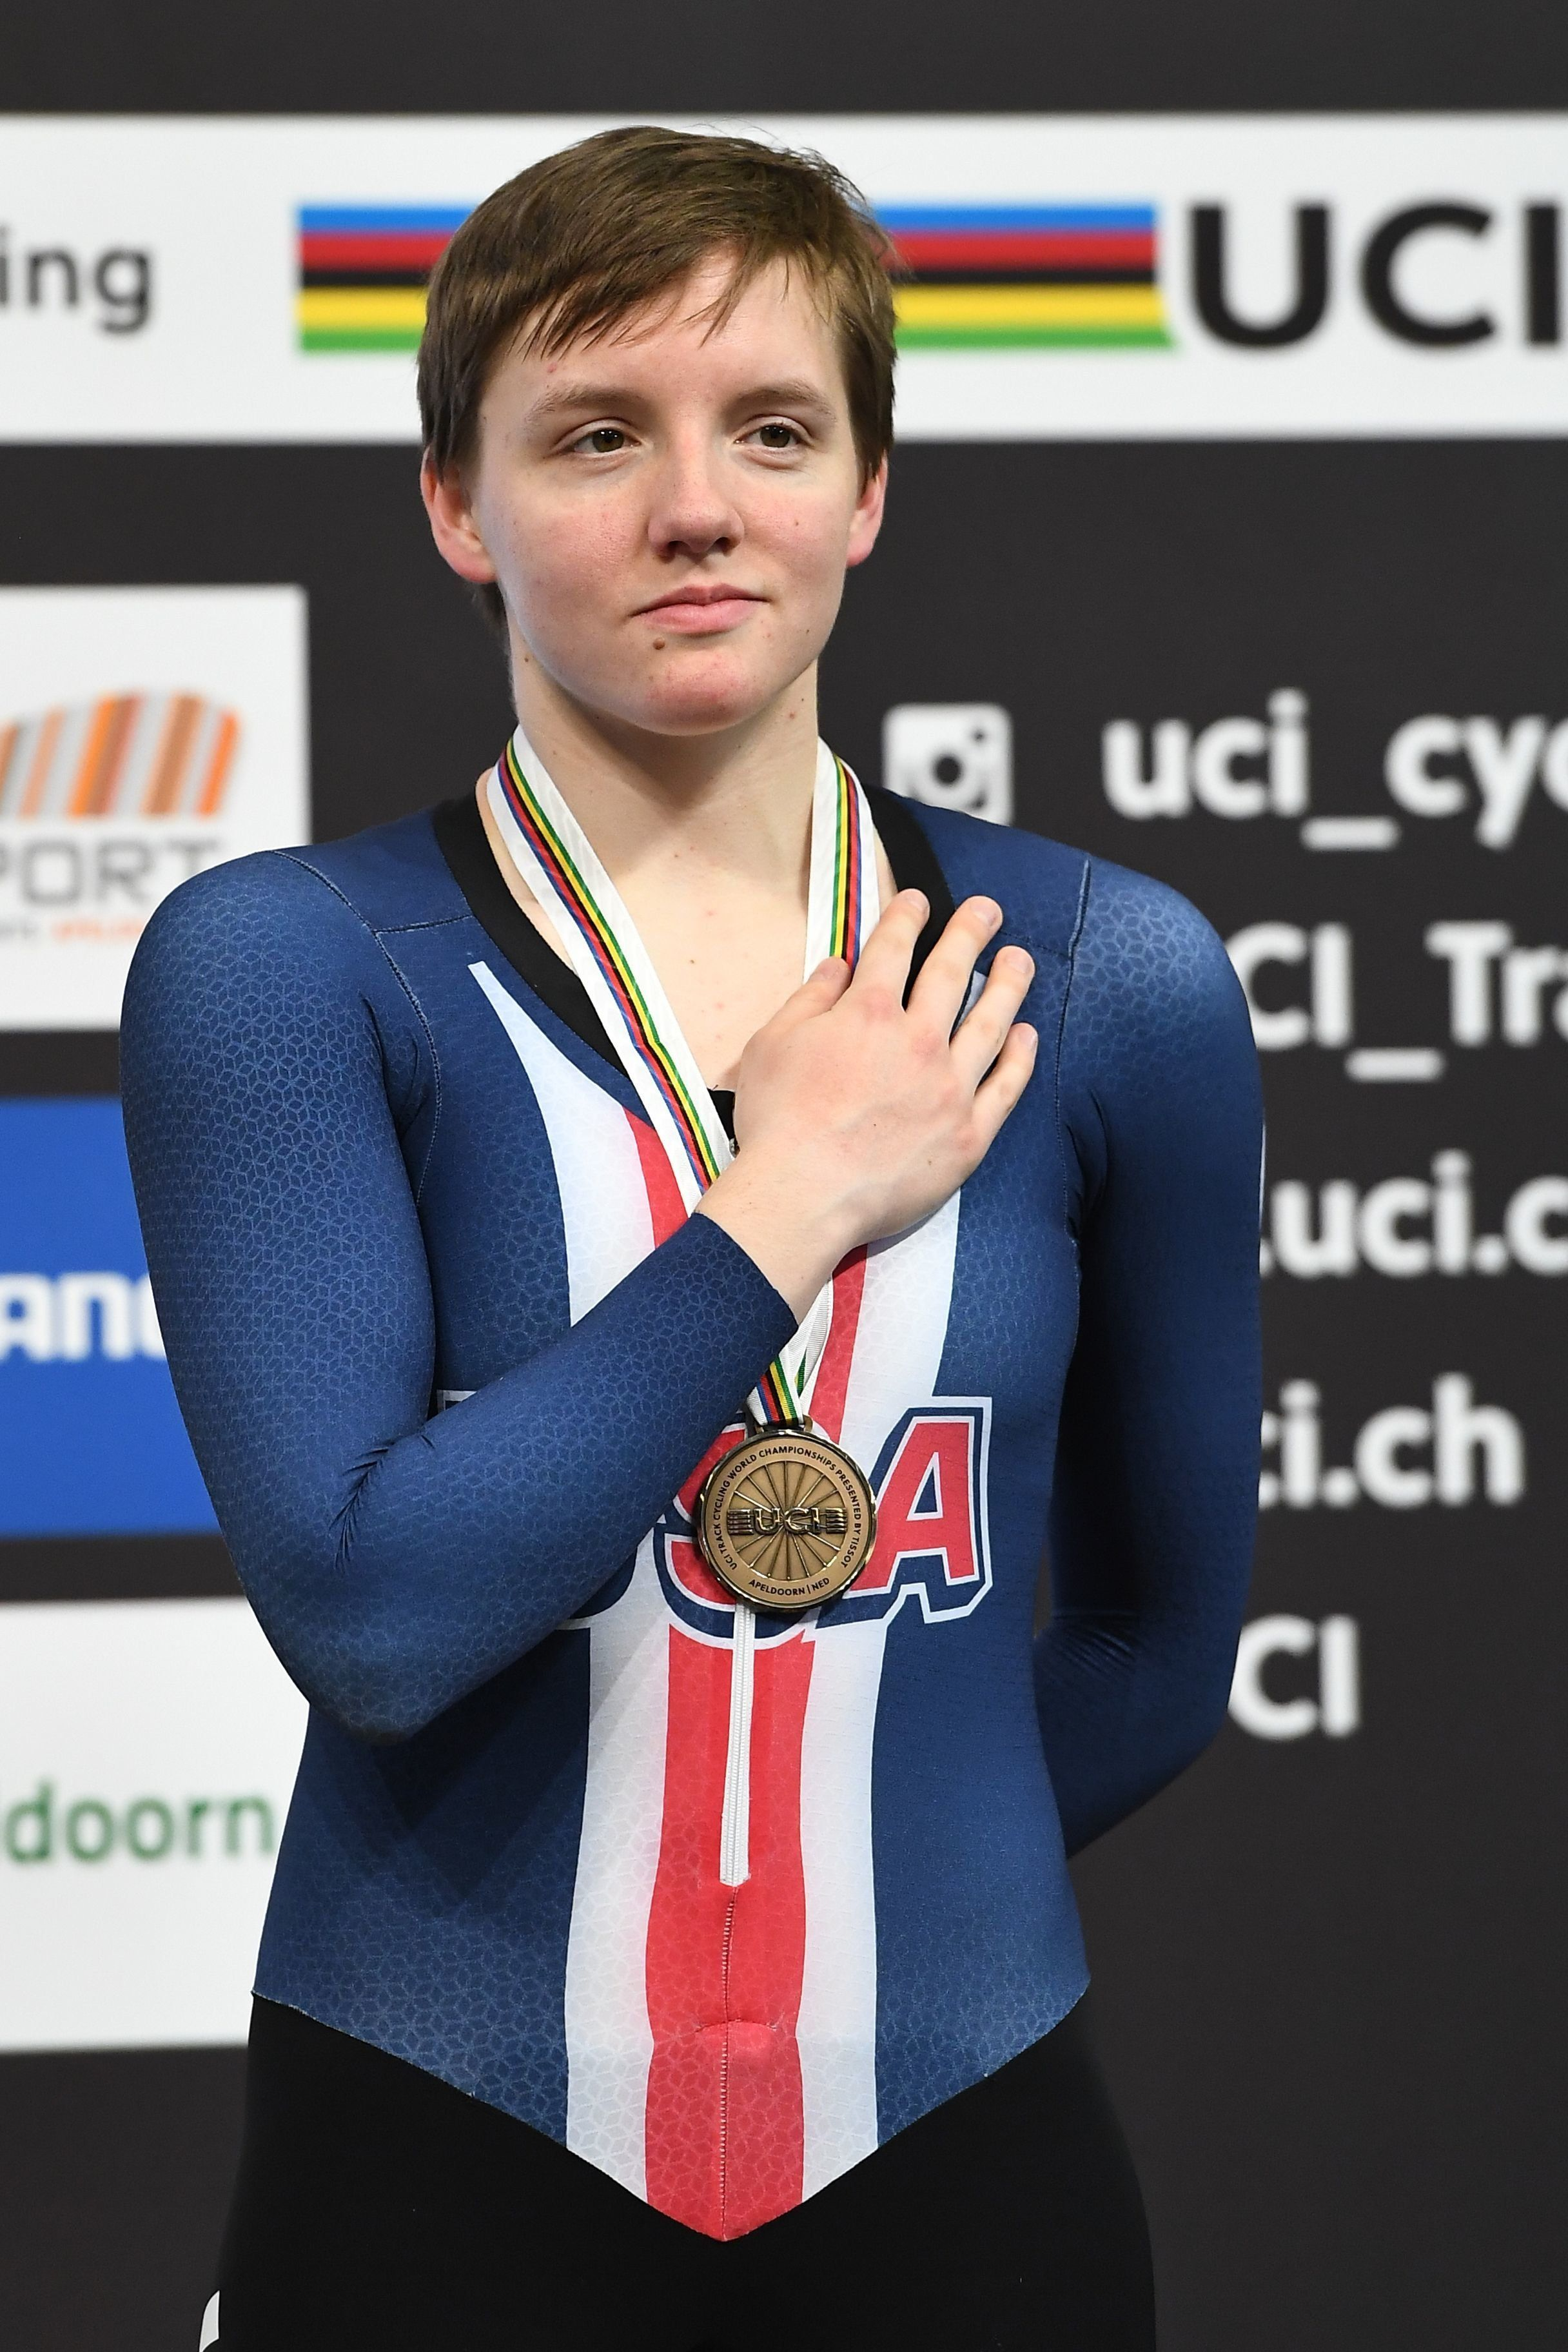 Bronze medallist US Kelly Catlin  poses on the podium after taking part in the women's individual pursuit final during the UCI Track Cycling World Championships in Apeldoorn on March 3, 2018.  / AFP PHOTO / EMMANUEL DUNAND        (Photo credit should read EMMANUEL DUNAND/AFP/Getty Images)